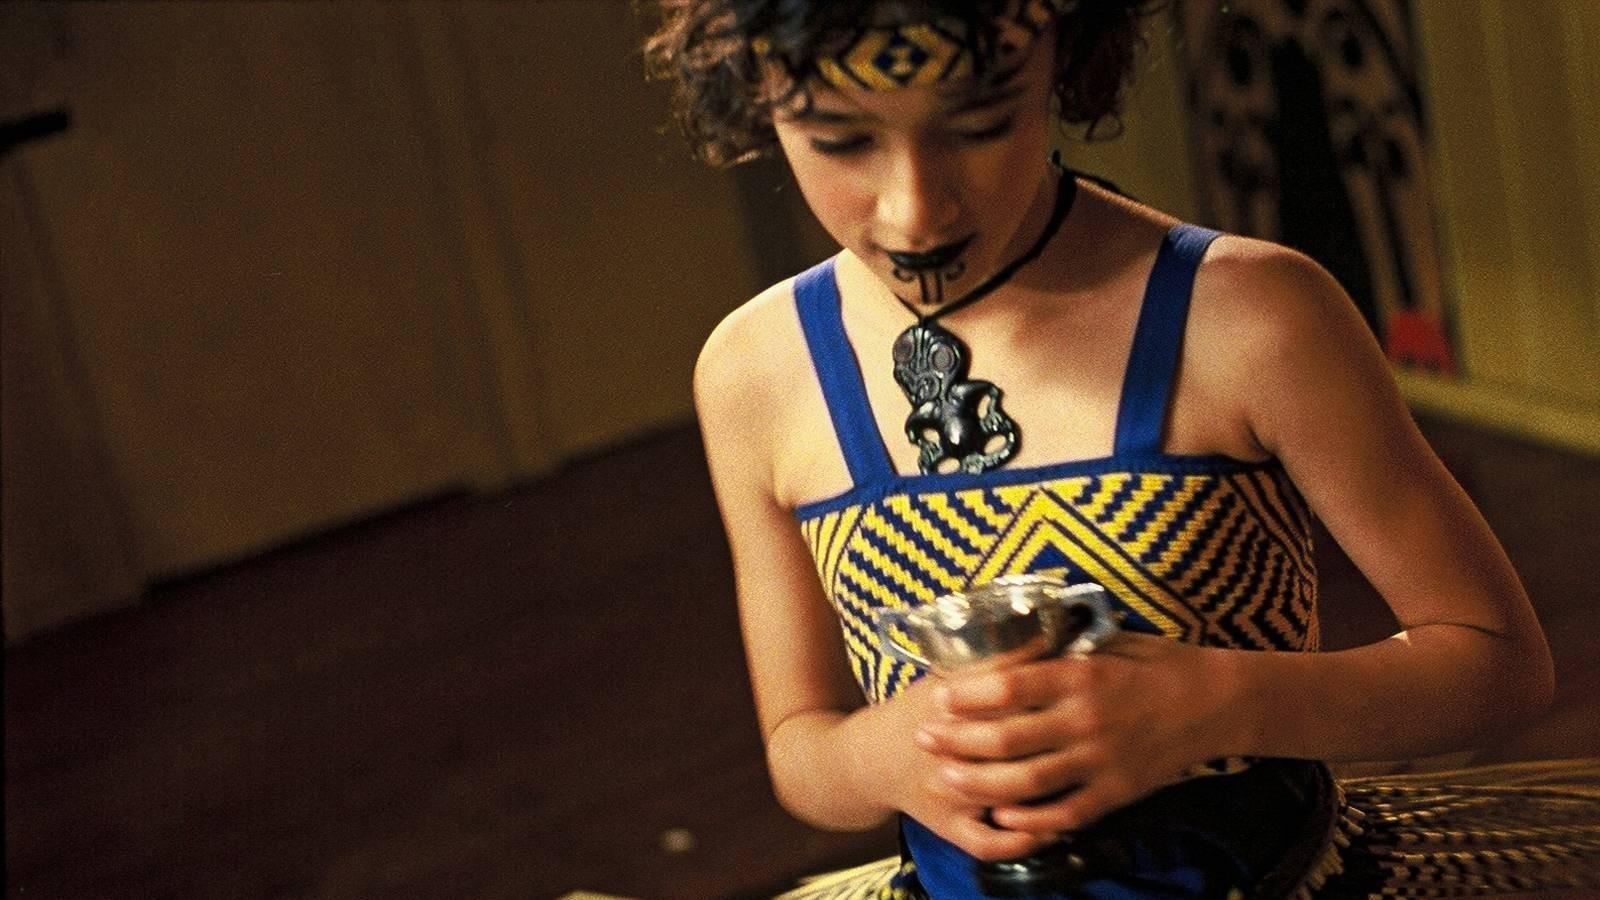 whale rider analysis essay In the 2002 film, whale rider, the director, niki caro created a magnificently empowering movie that serves as an inspirational tool for females.